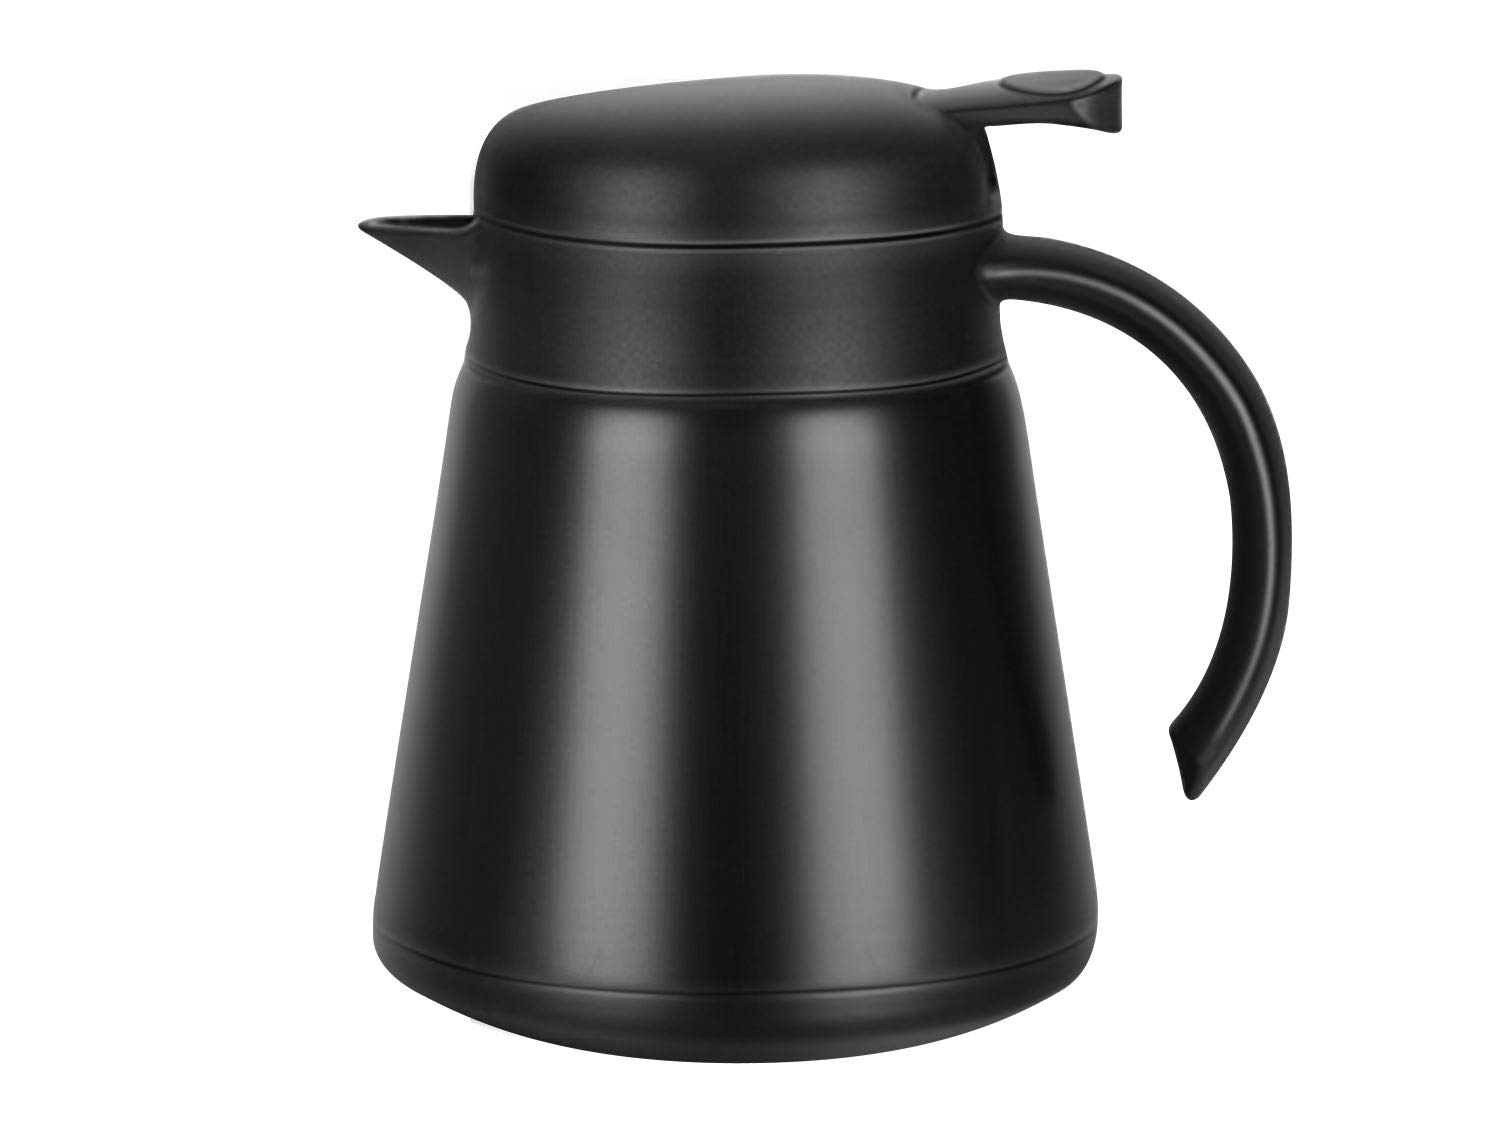 Luvan 304 18/10 Stainless Steel Thermal Carafe/Double Walled Vacuum Insulated Coffee Pot with Press Button Top,24+ Hrs Heat&Cold Retention,BPA Free,for Coffee,Tea,Beverage etc (Black, 27 OZ) by Luvan (Image #1)